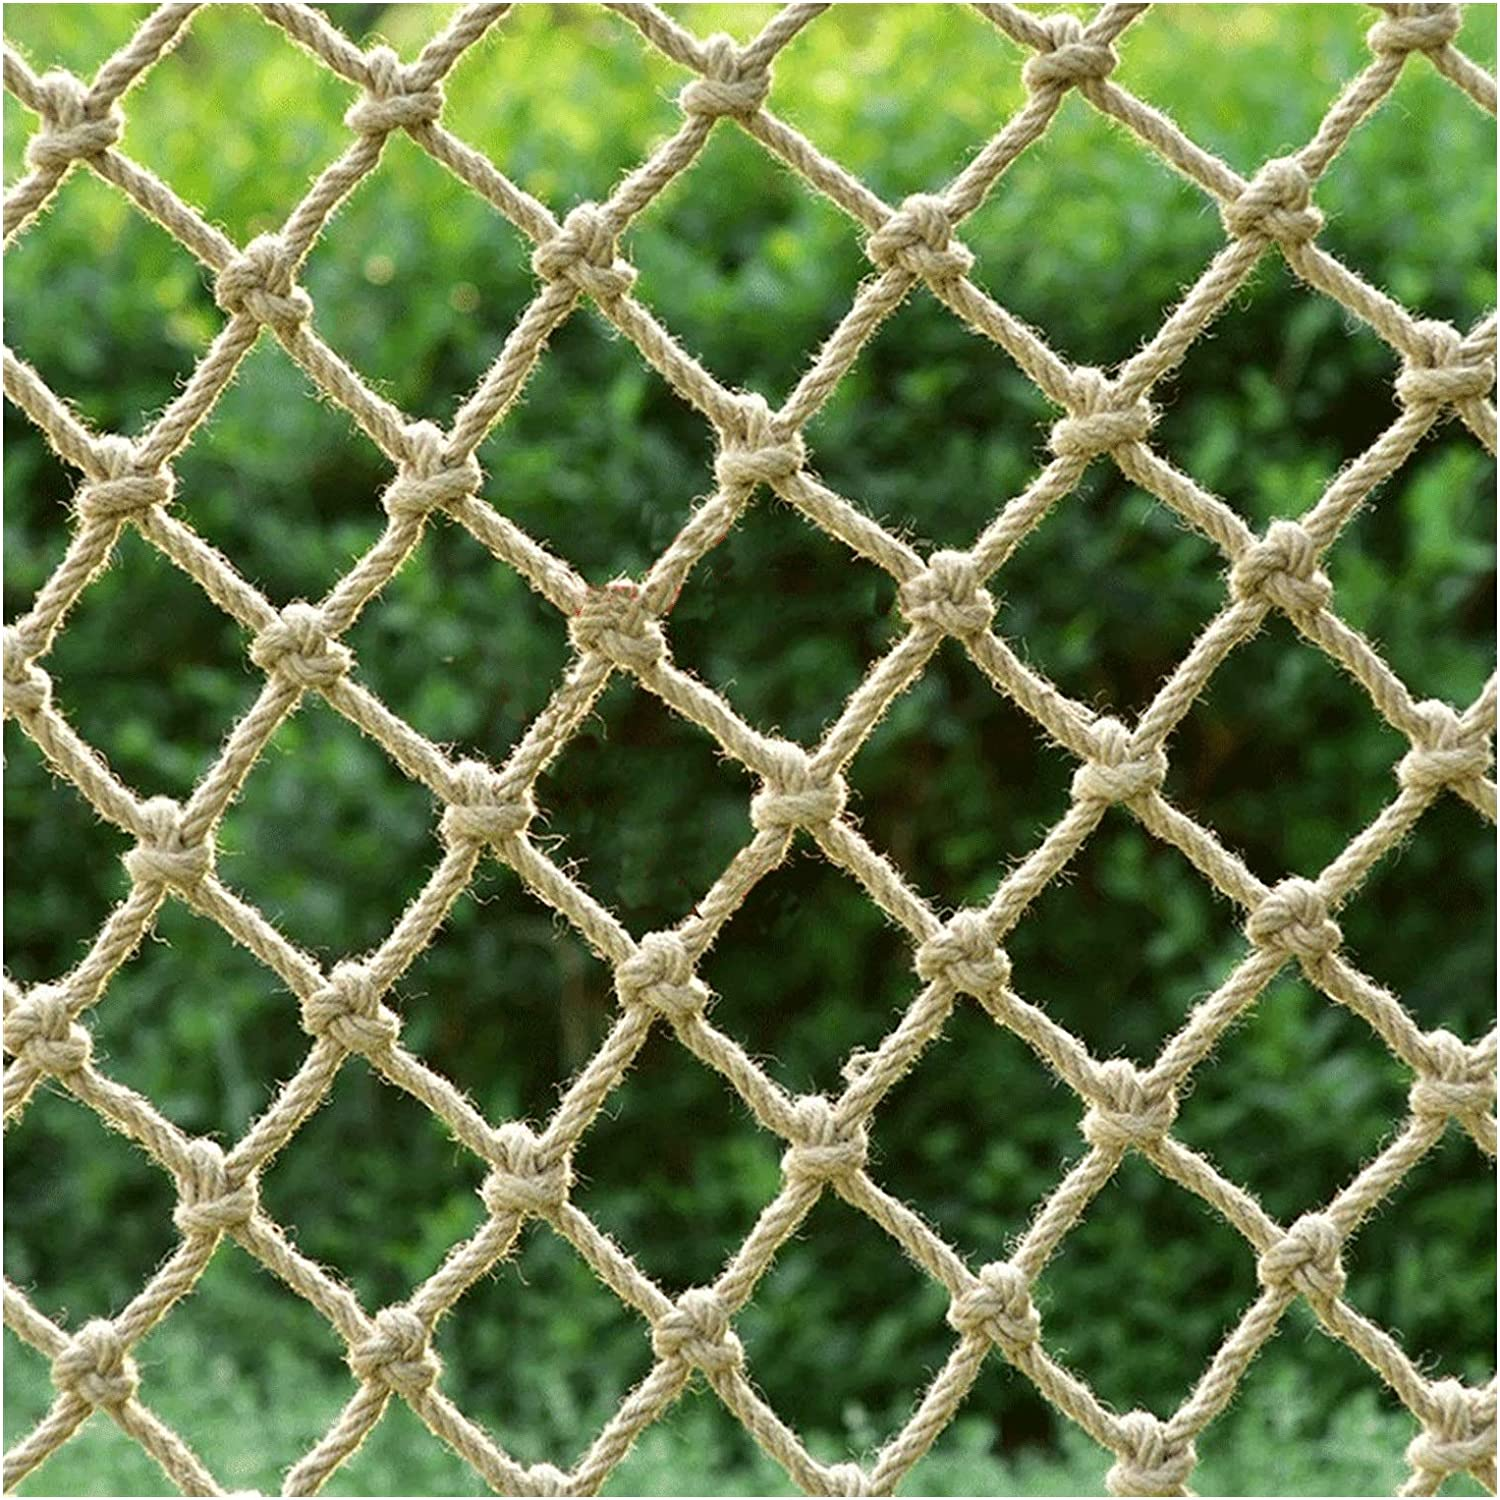 Jing绳网 Climbing net Easy-to-use Fashionable Rope Prot Net Child Outdoor